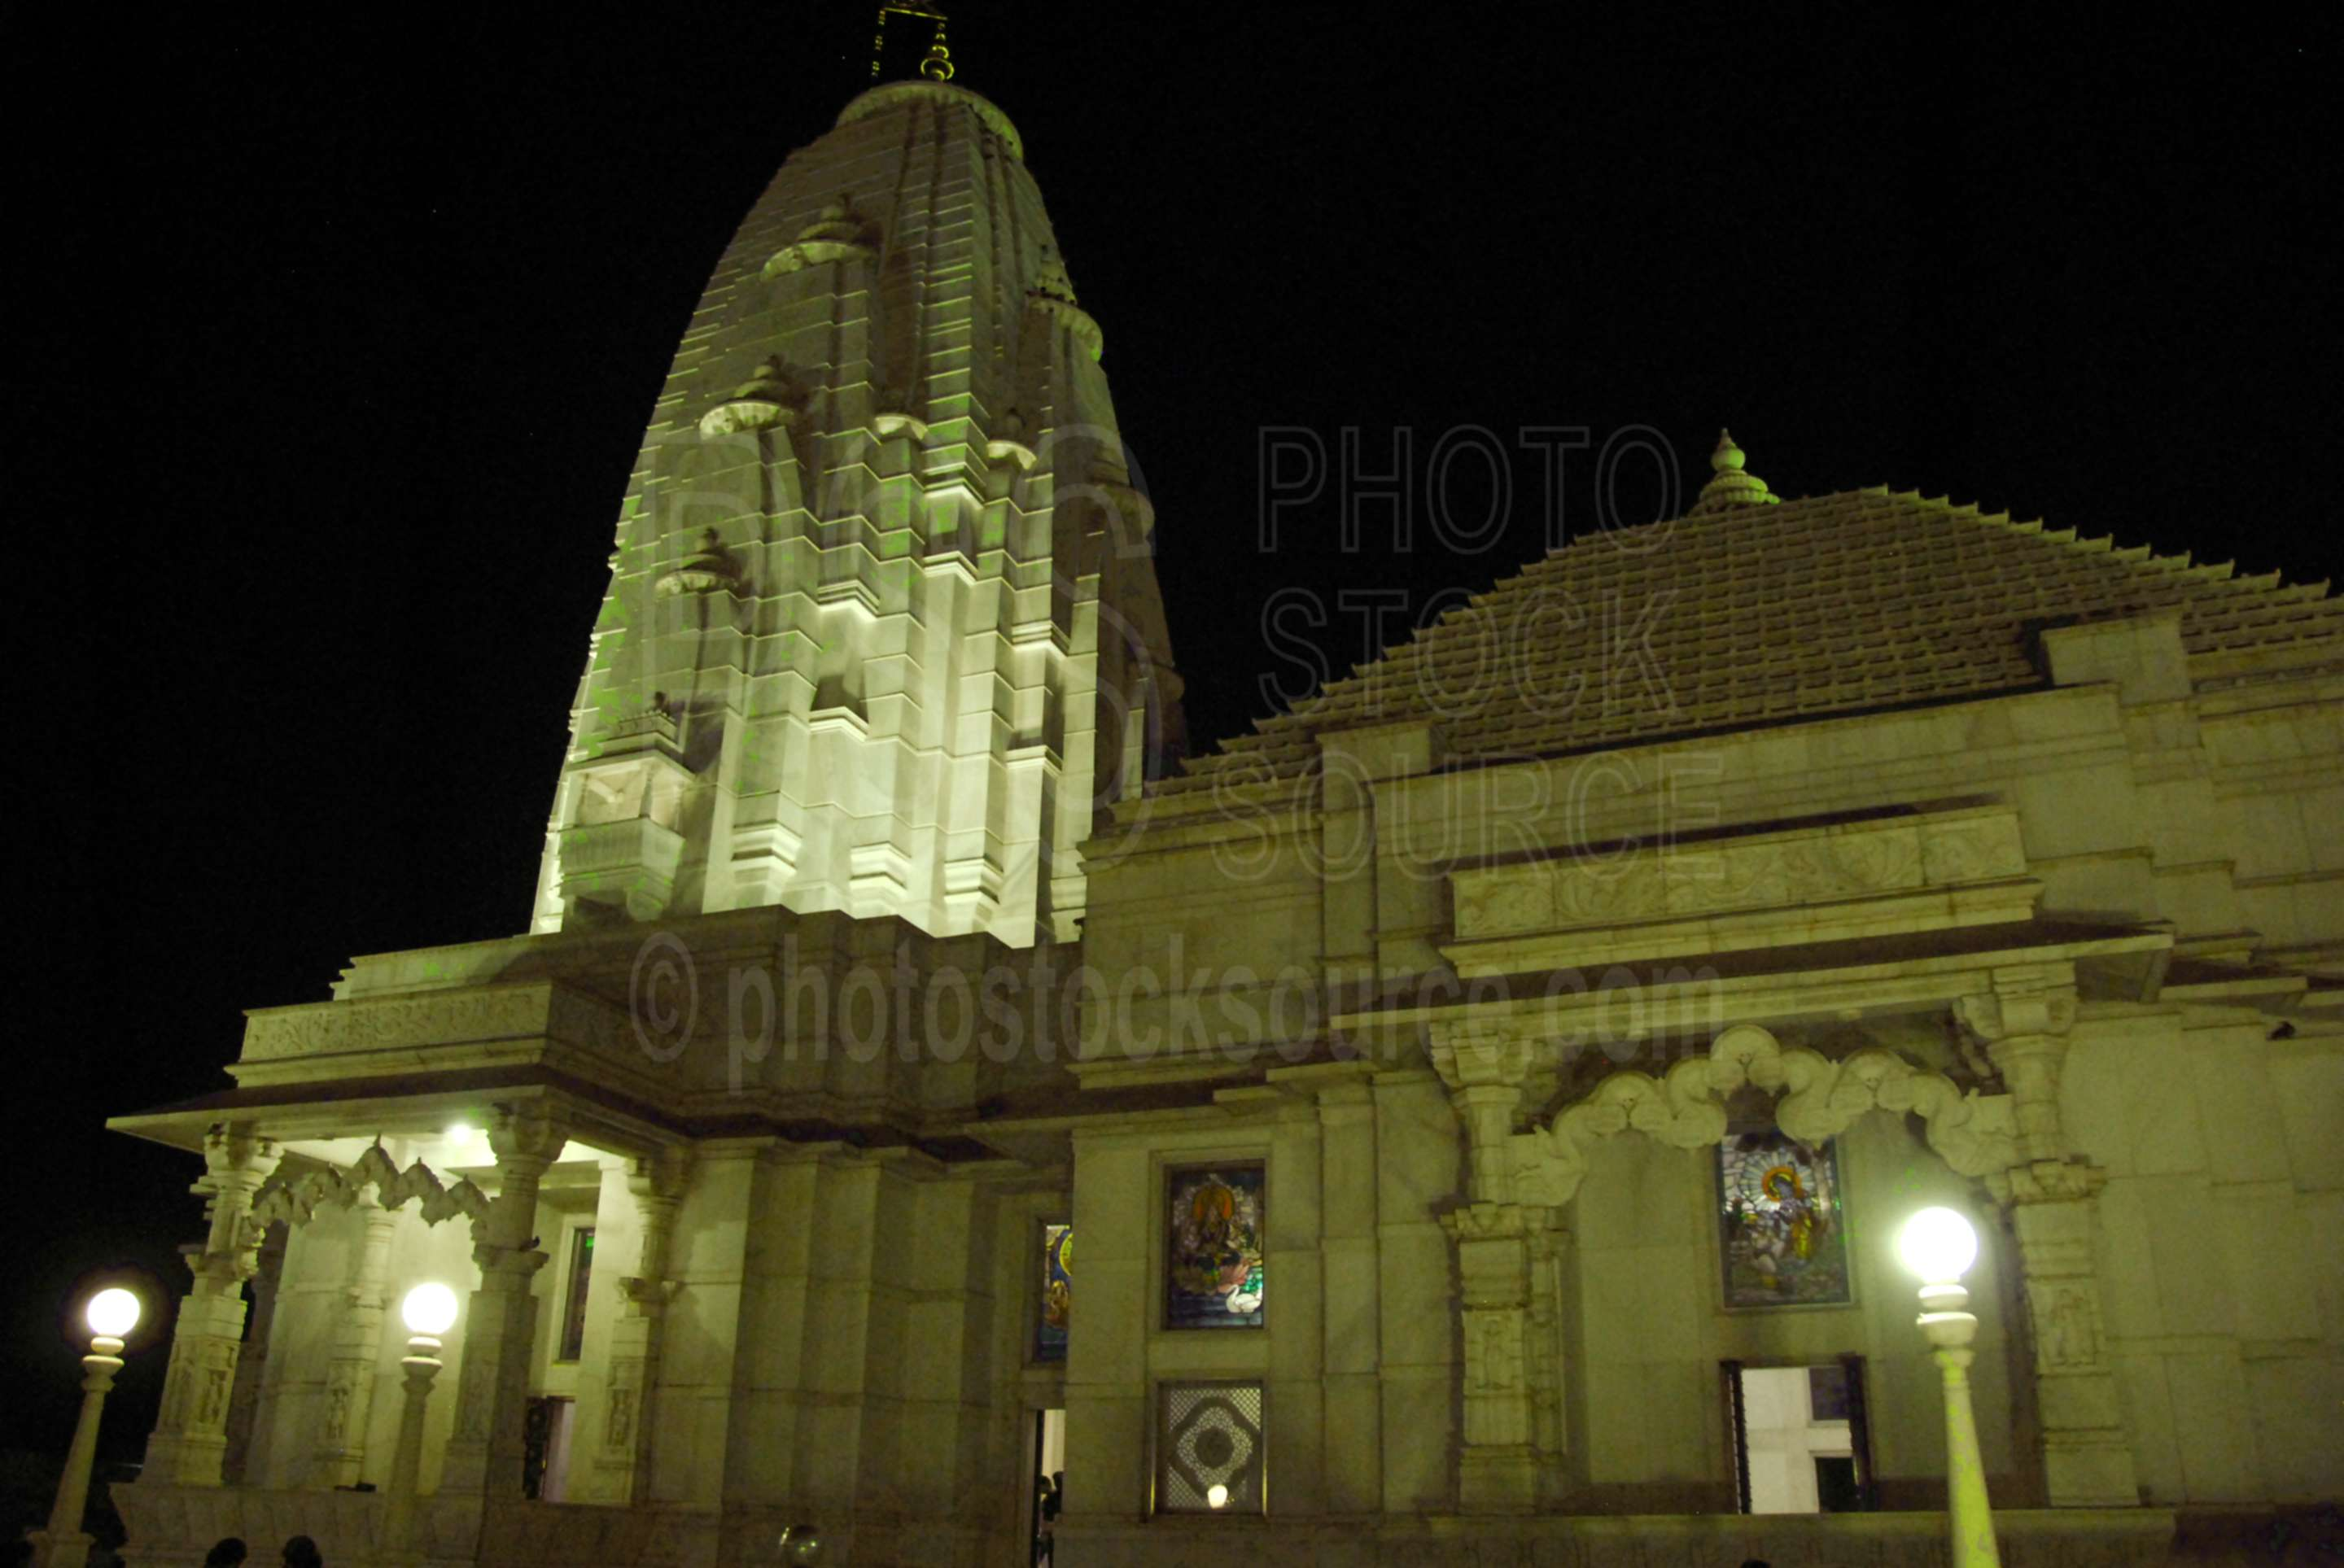 Sirla Lakshmi Narayan Temple,temple,church,worship,religious,night,lights,architecture,churches,temples